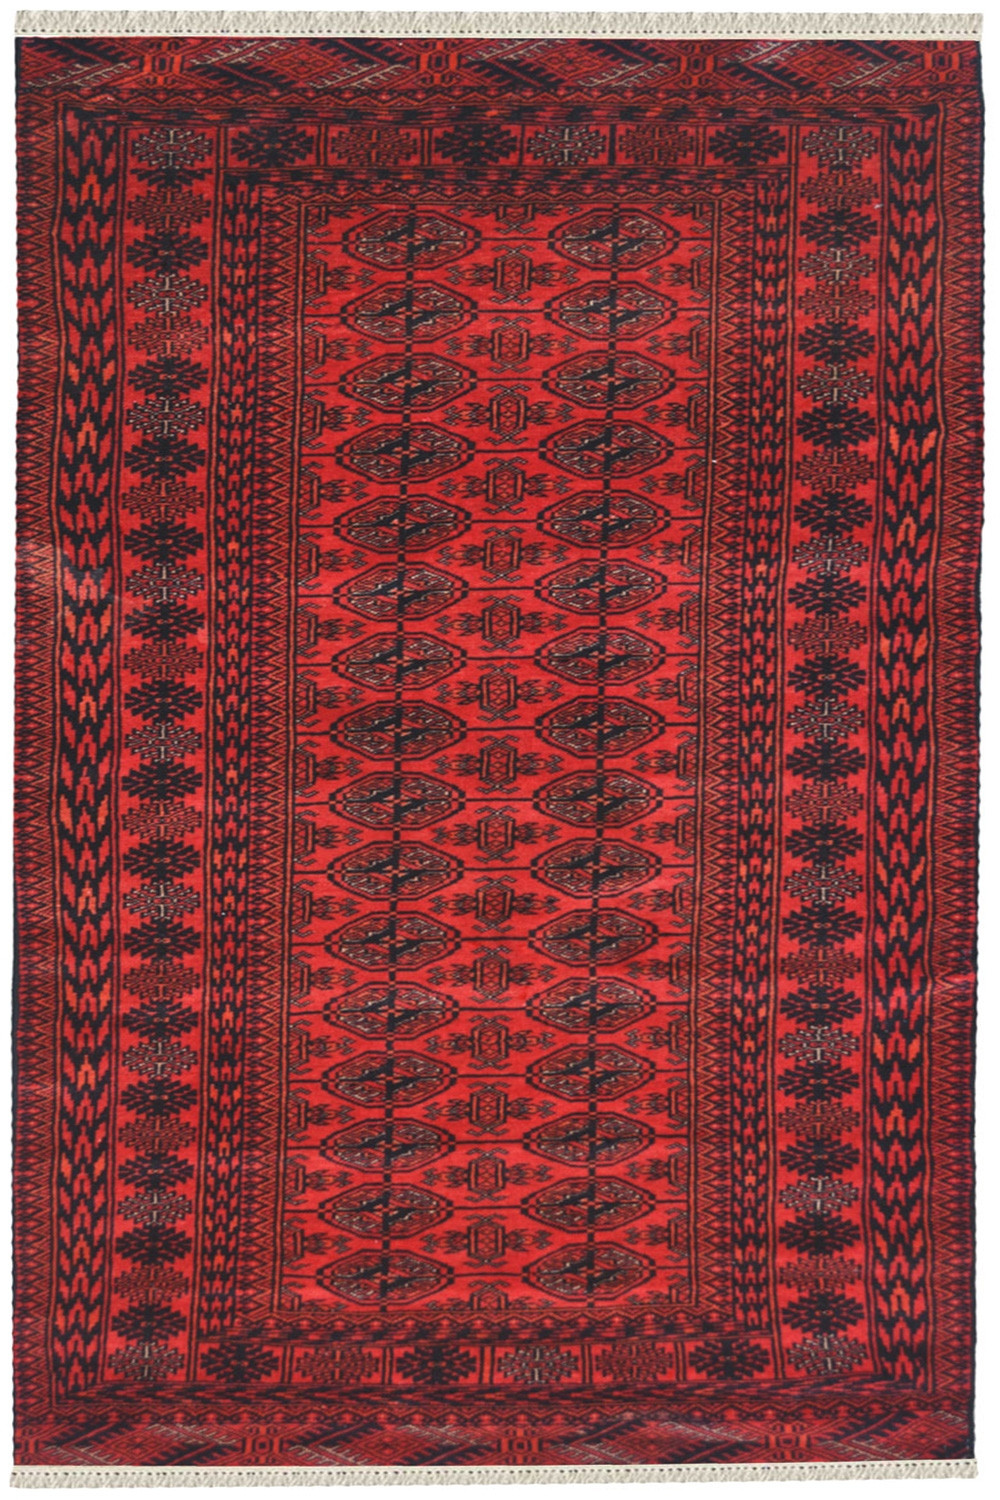 Buy Beautiful Jaali Bukhara Afghan Wool Rugs Online At